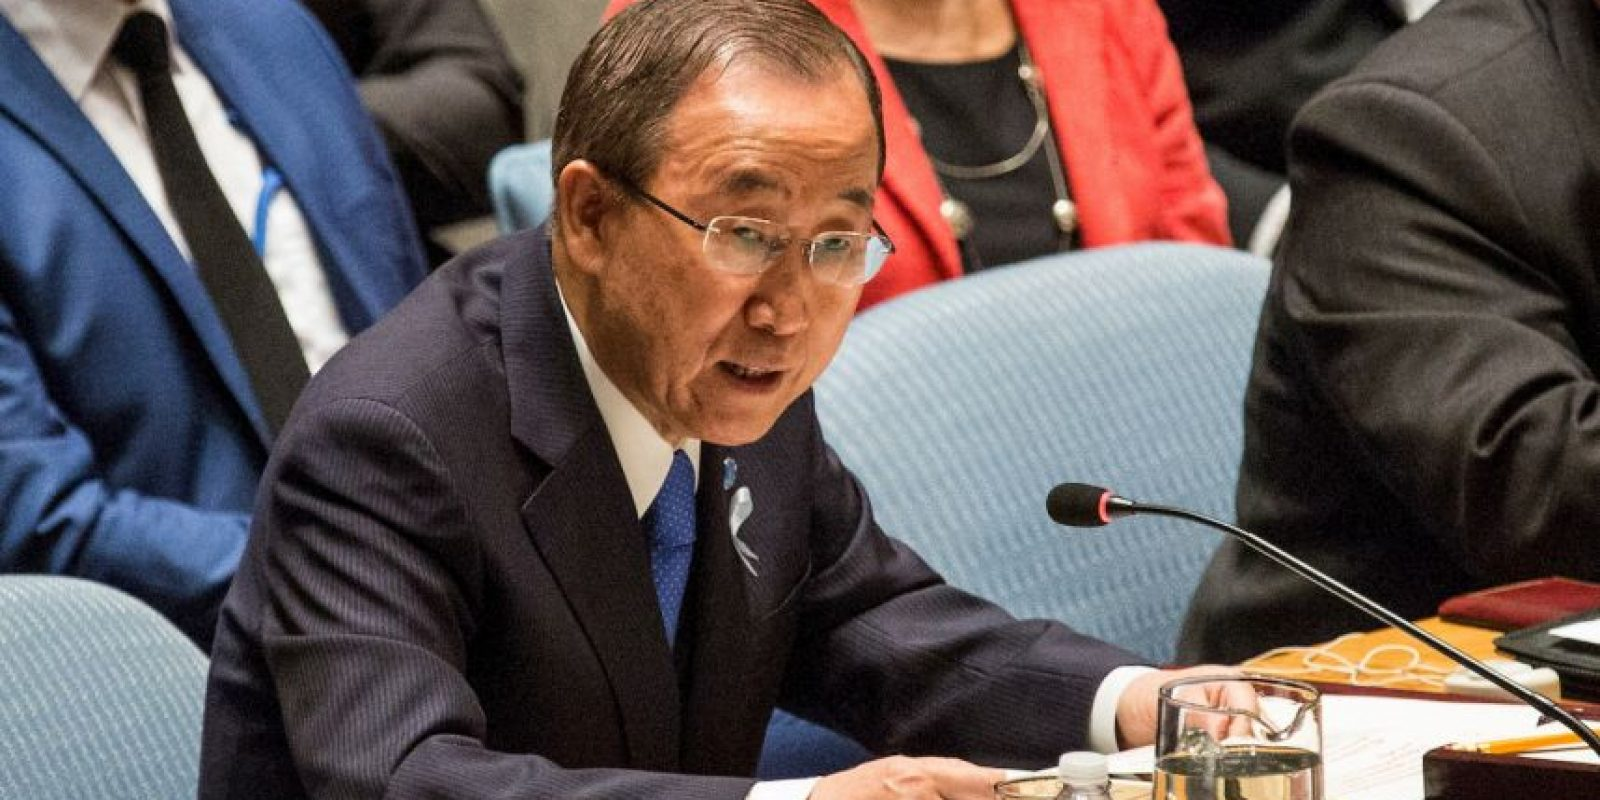 2. El actual Secretario General es Ban Ki-moon. Foto: Getty Images